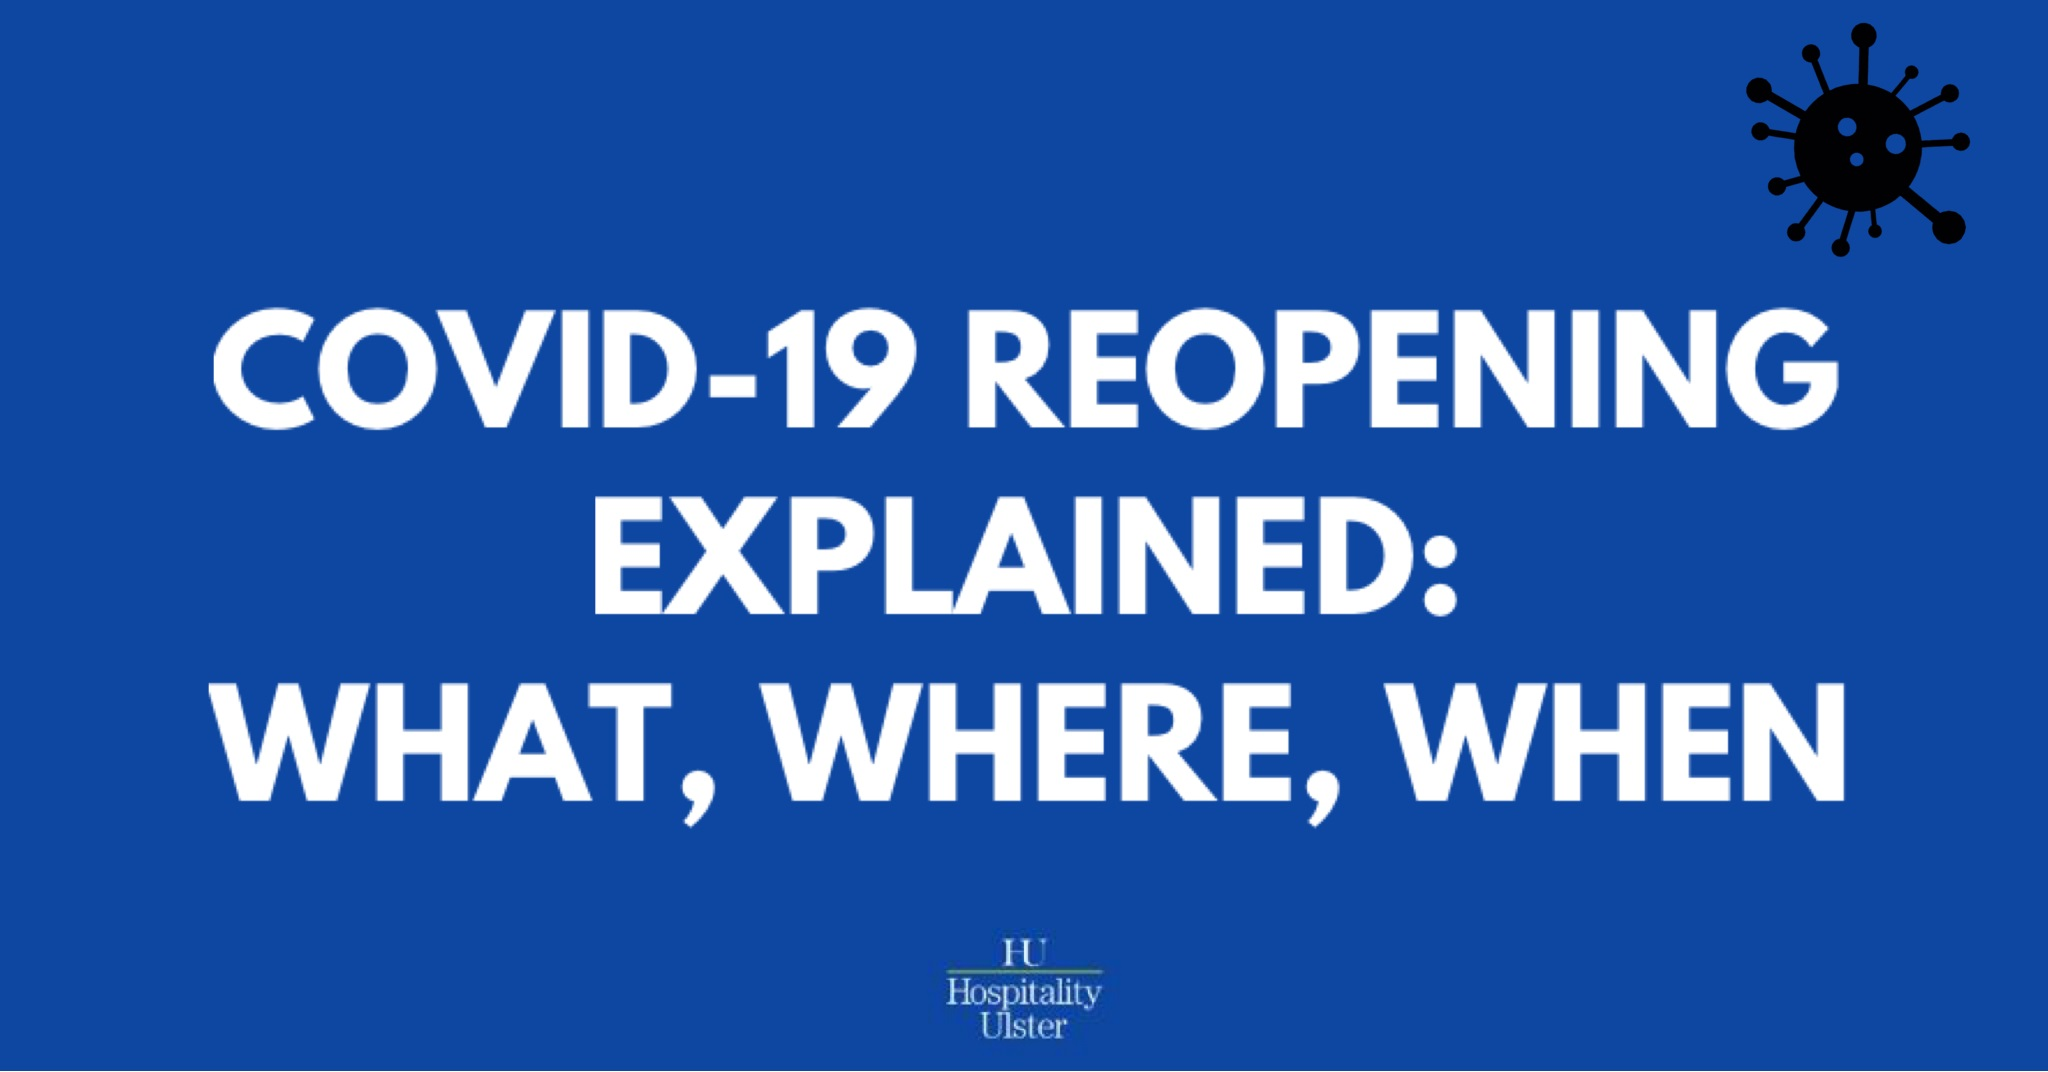 THE WHAT WHERE AND WHEN OF COVID19 REOPENING EXPLAINED